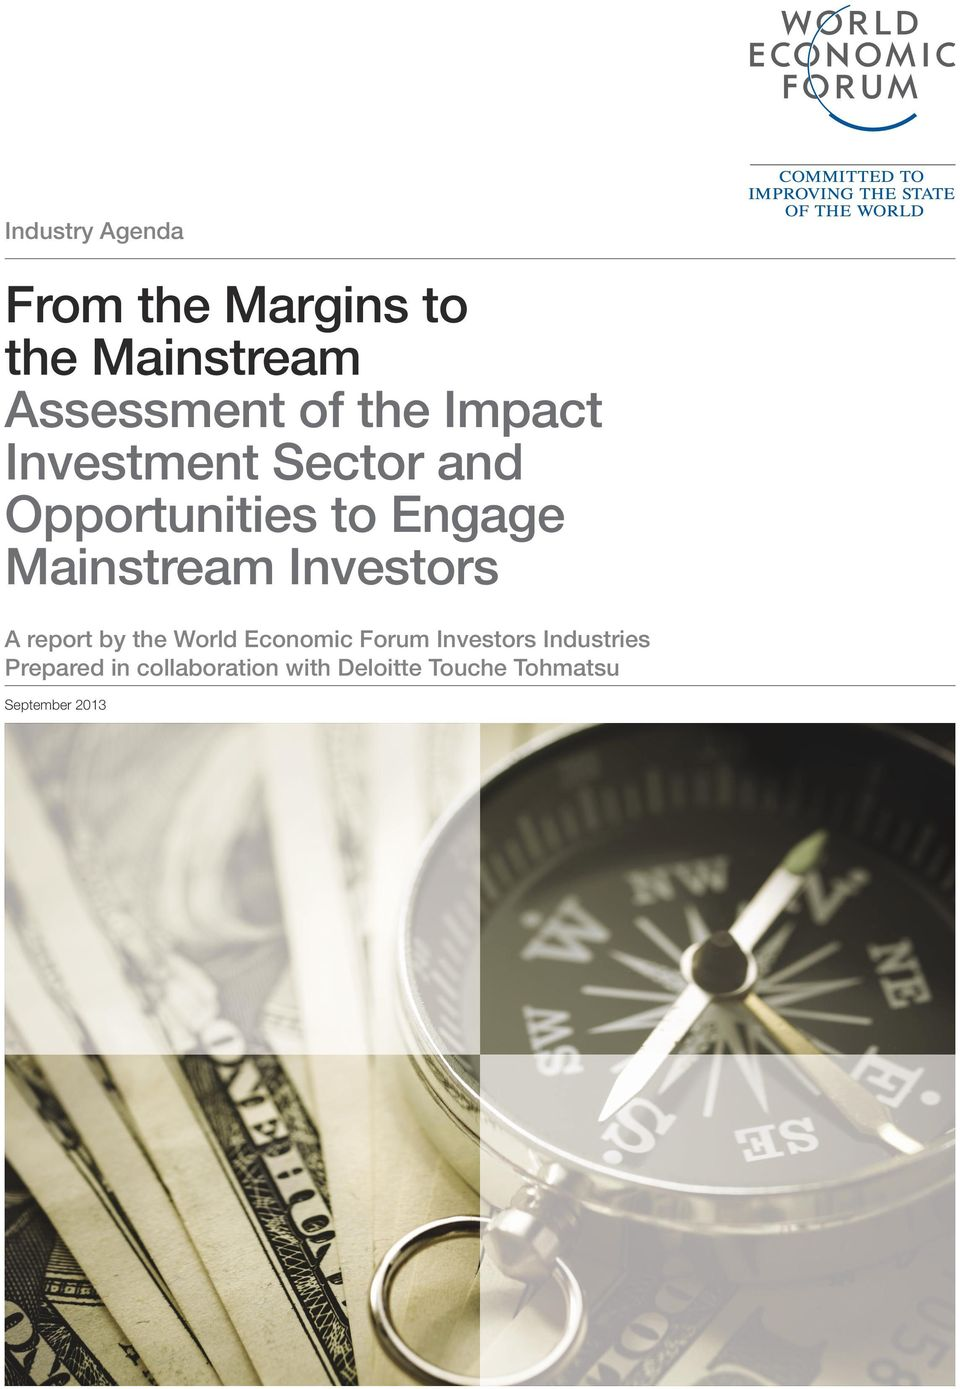 Investors A report by the World Economic Forum Investors Industries